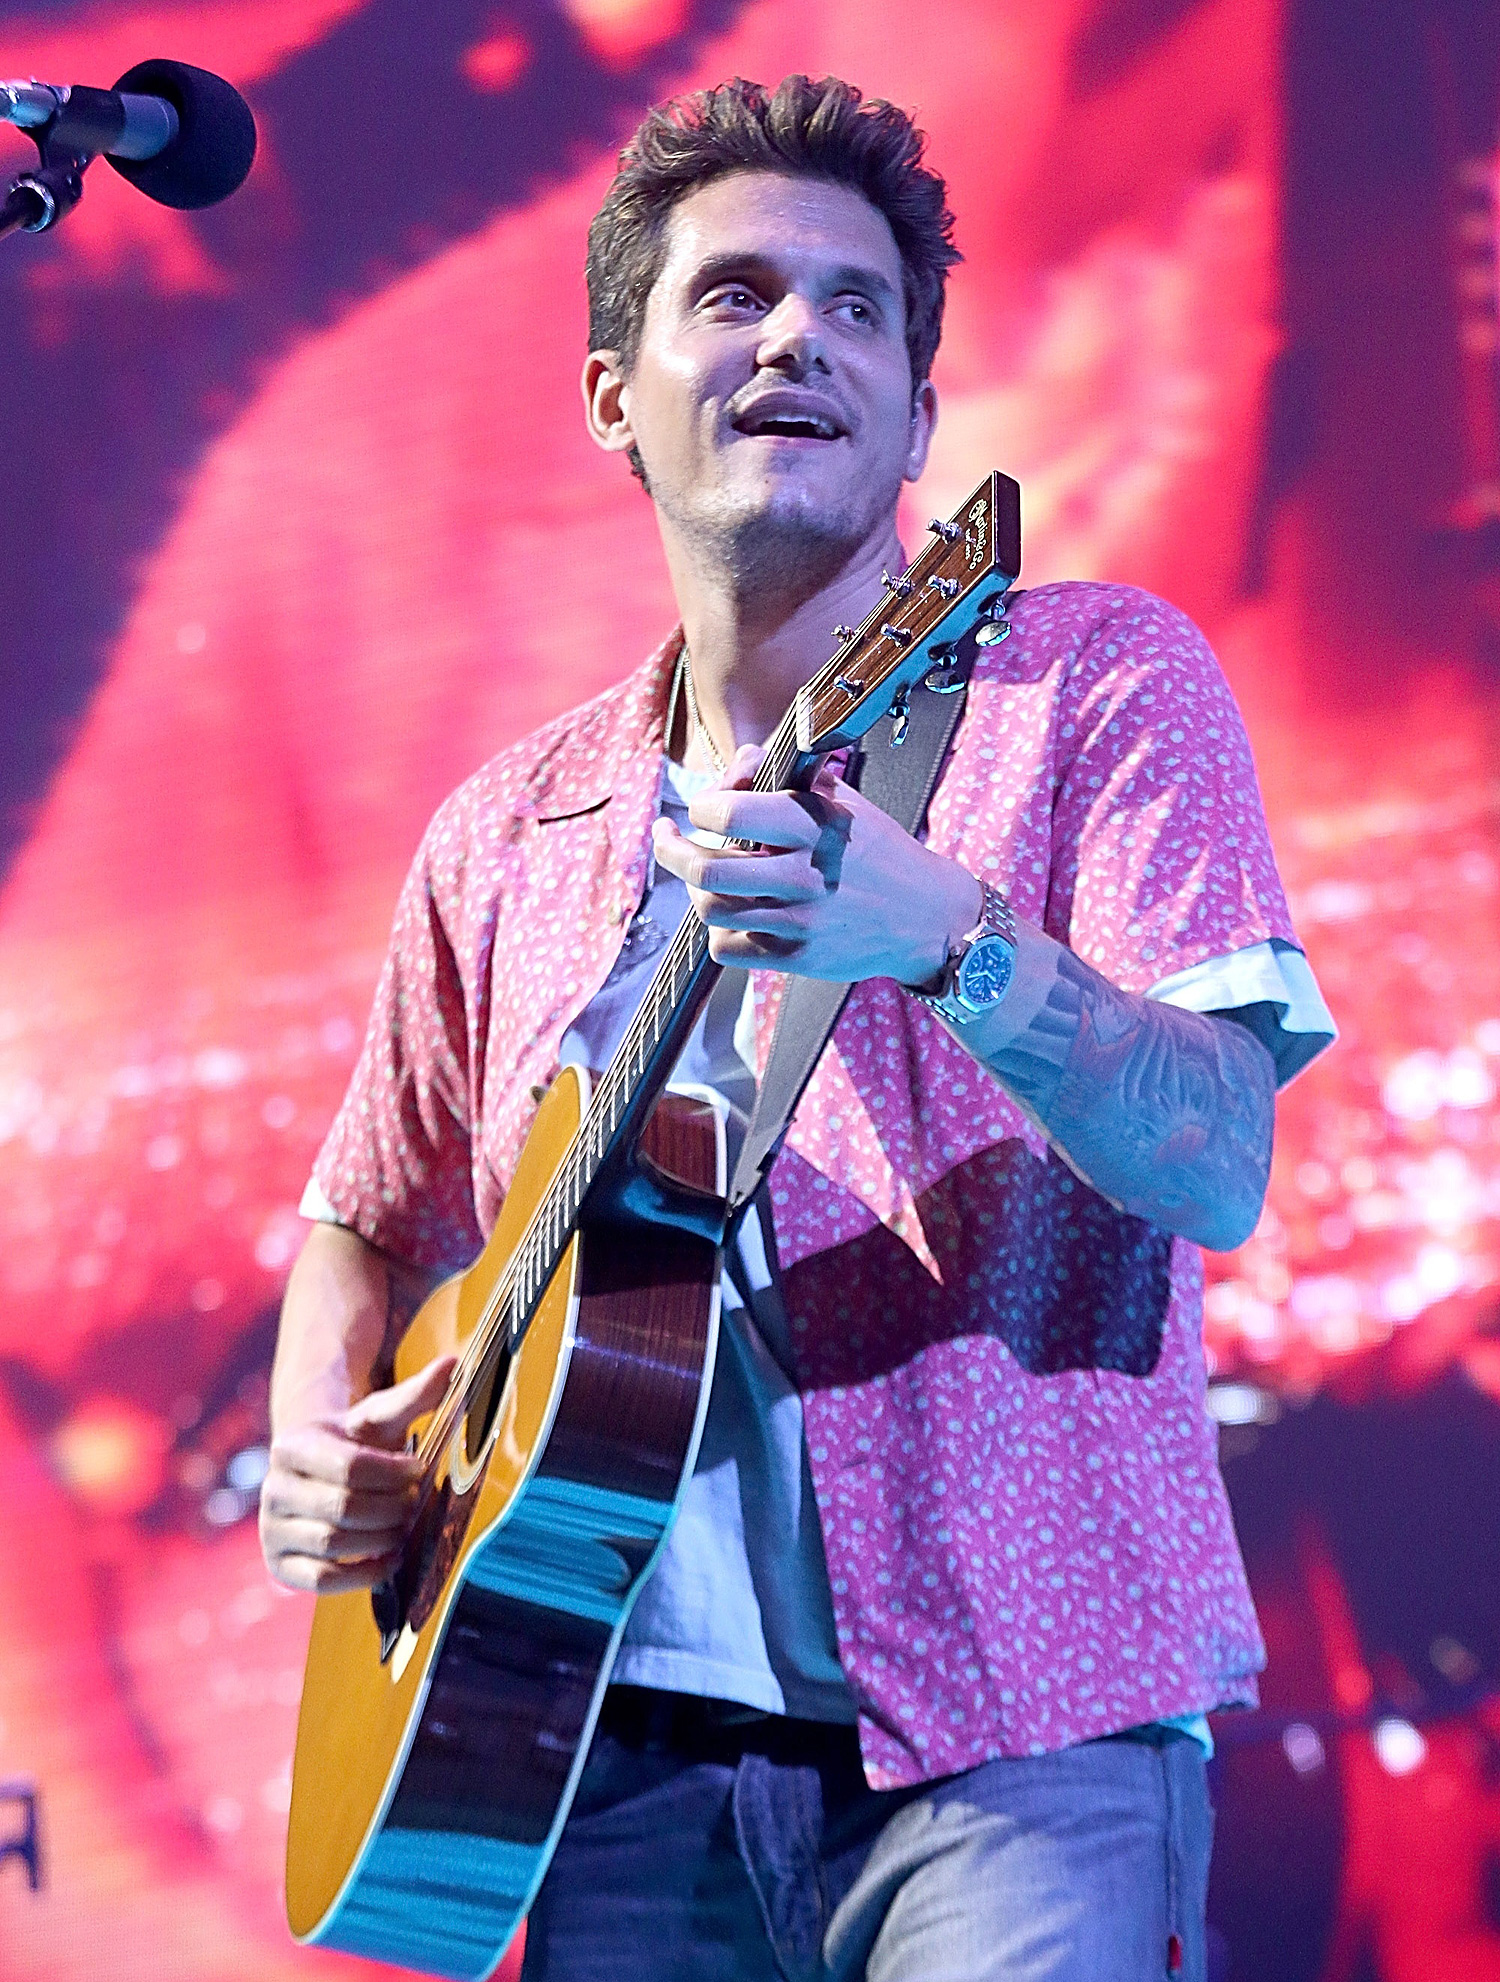 John Mayer Hospitalized for Emergency Appendectomy; Dead & Company Show Postponed